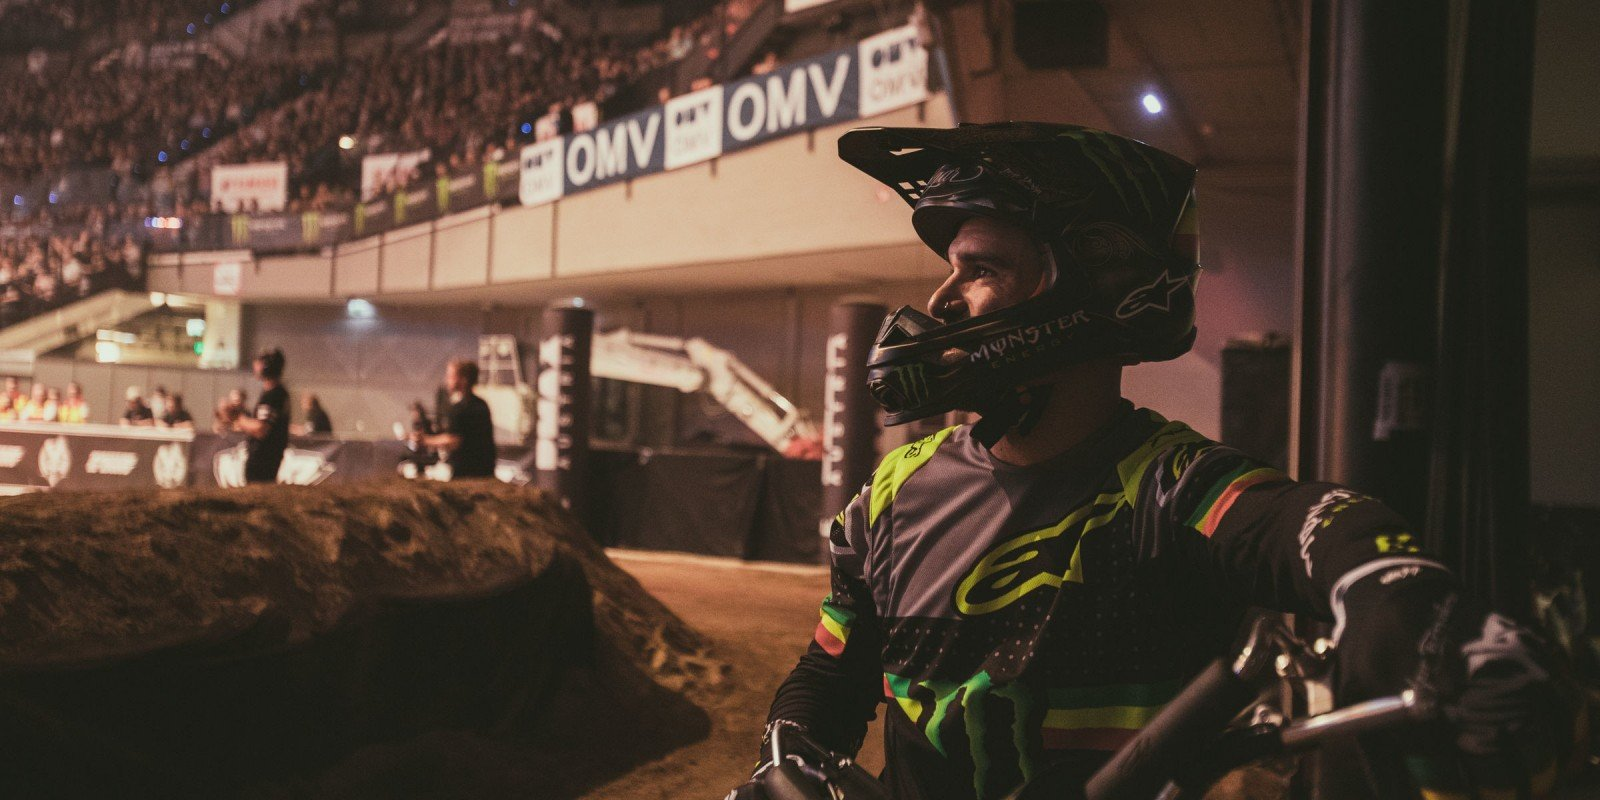 pictures from Masters of Dirt Vienna, 2019